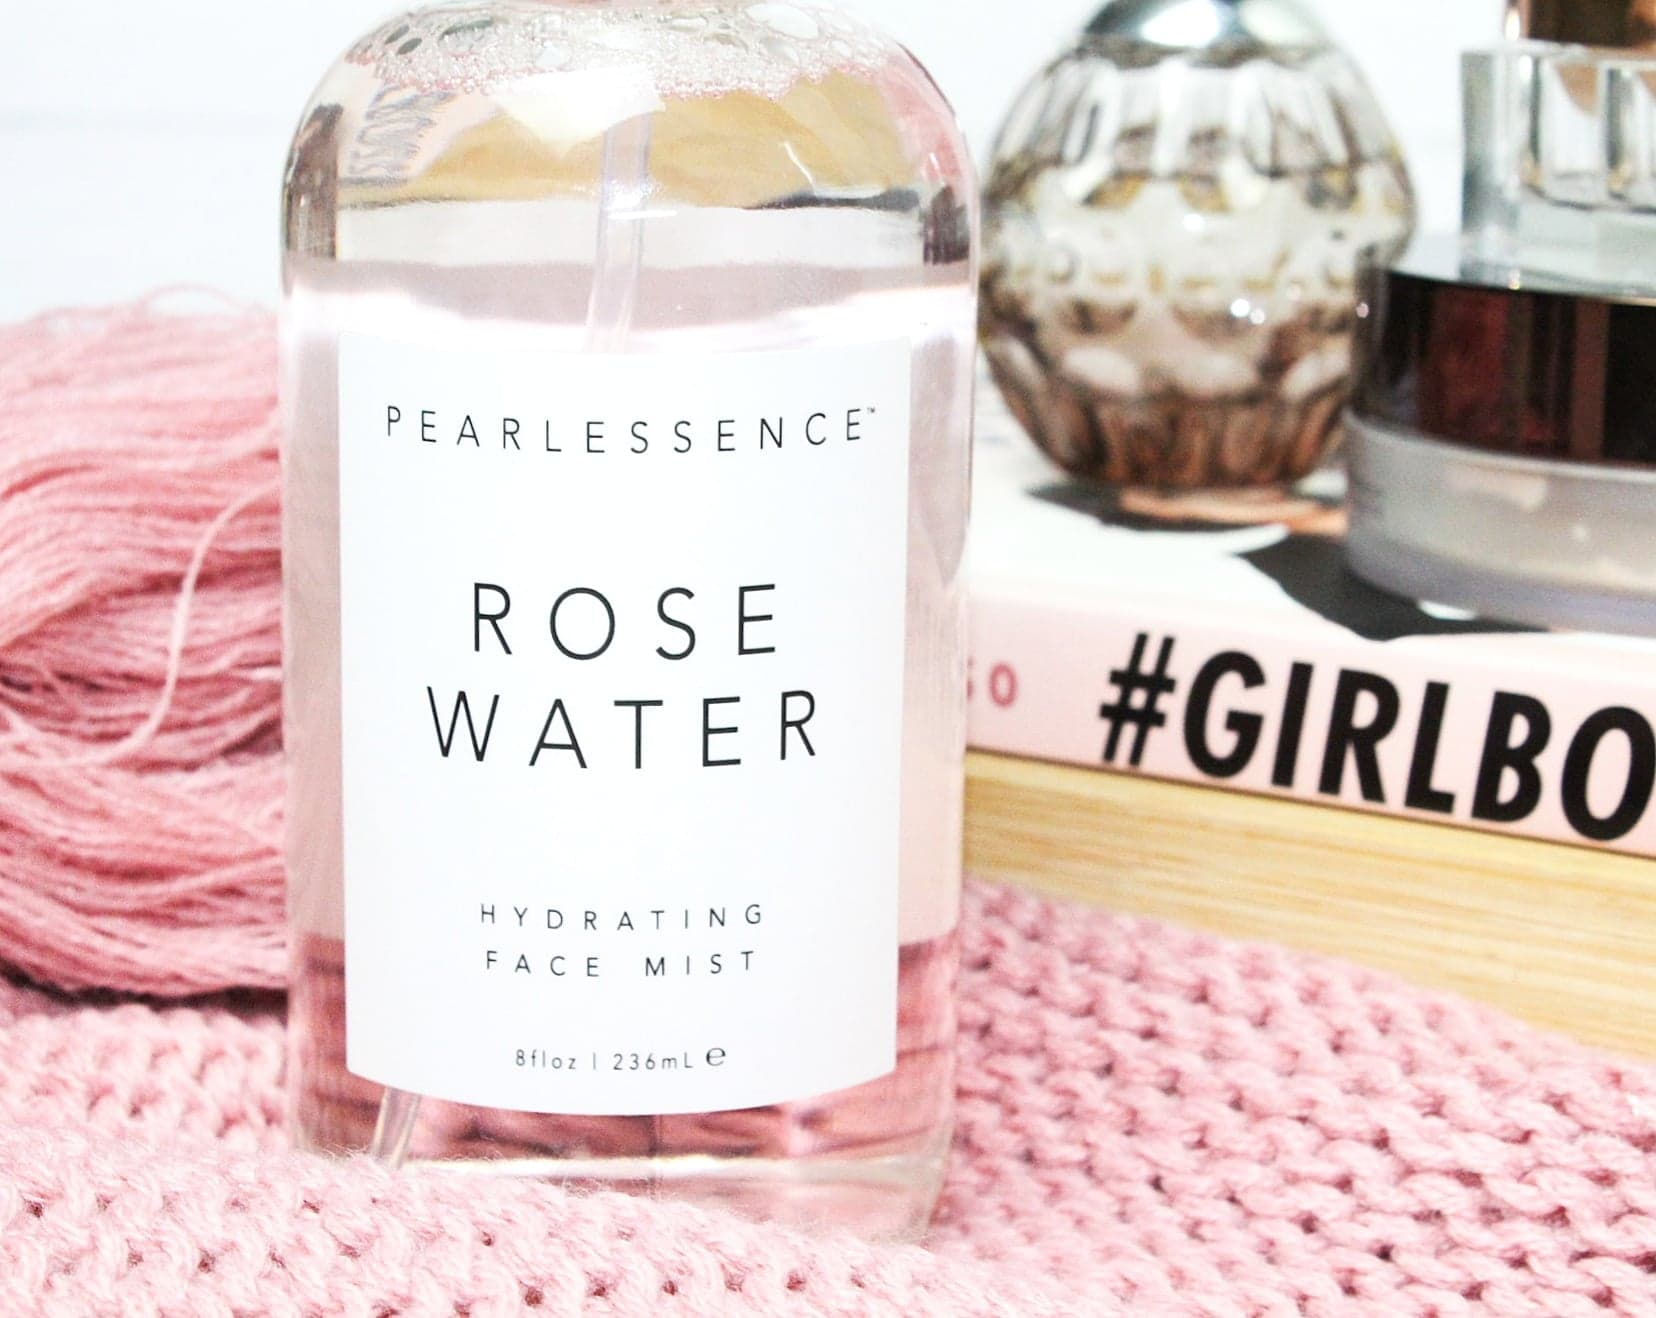 Pearlessence Rose Water Hydrating Face Mist | A Hidden Gem at TK Maxx